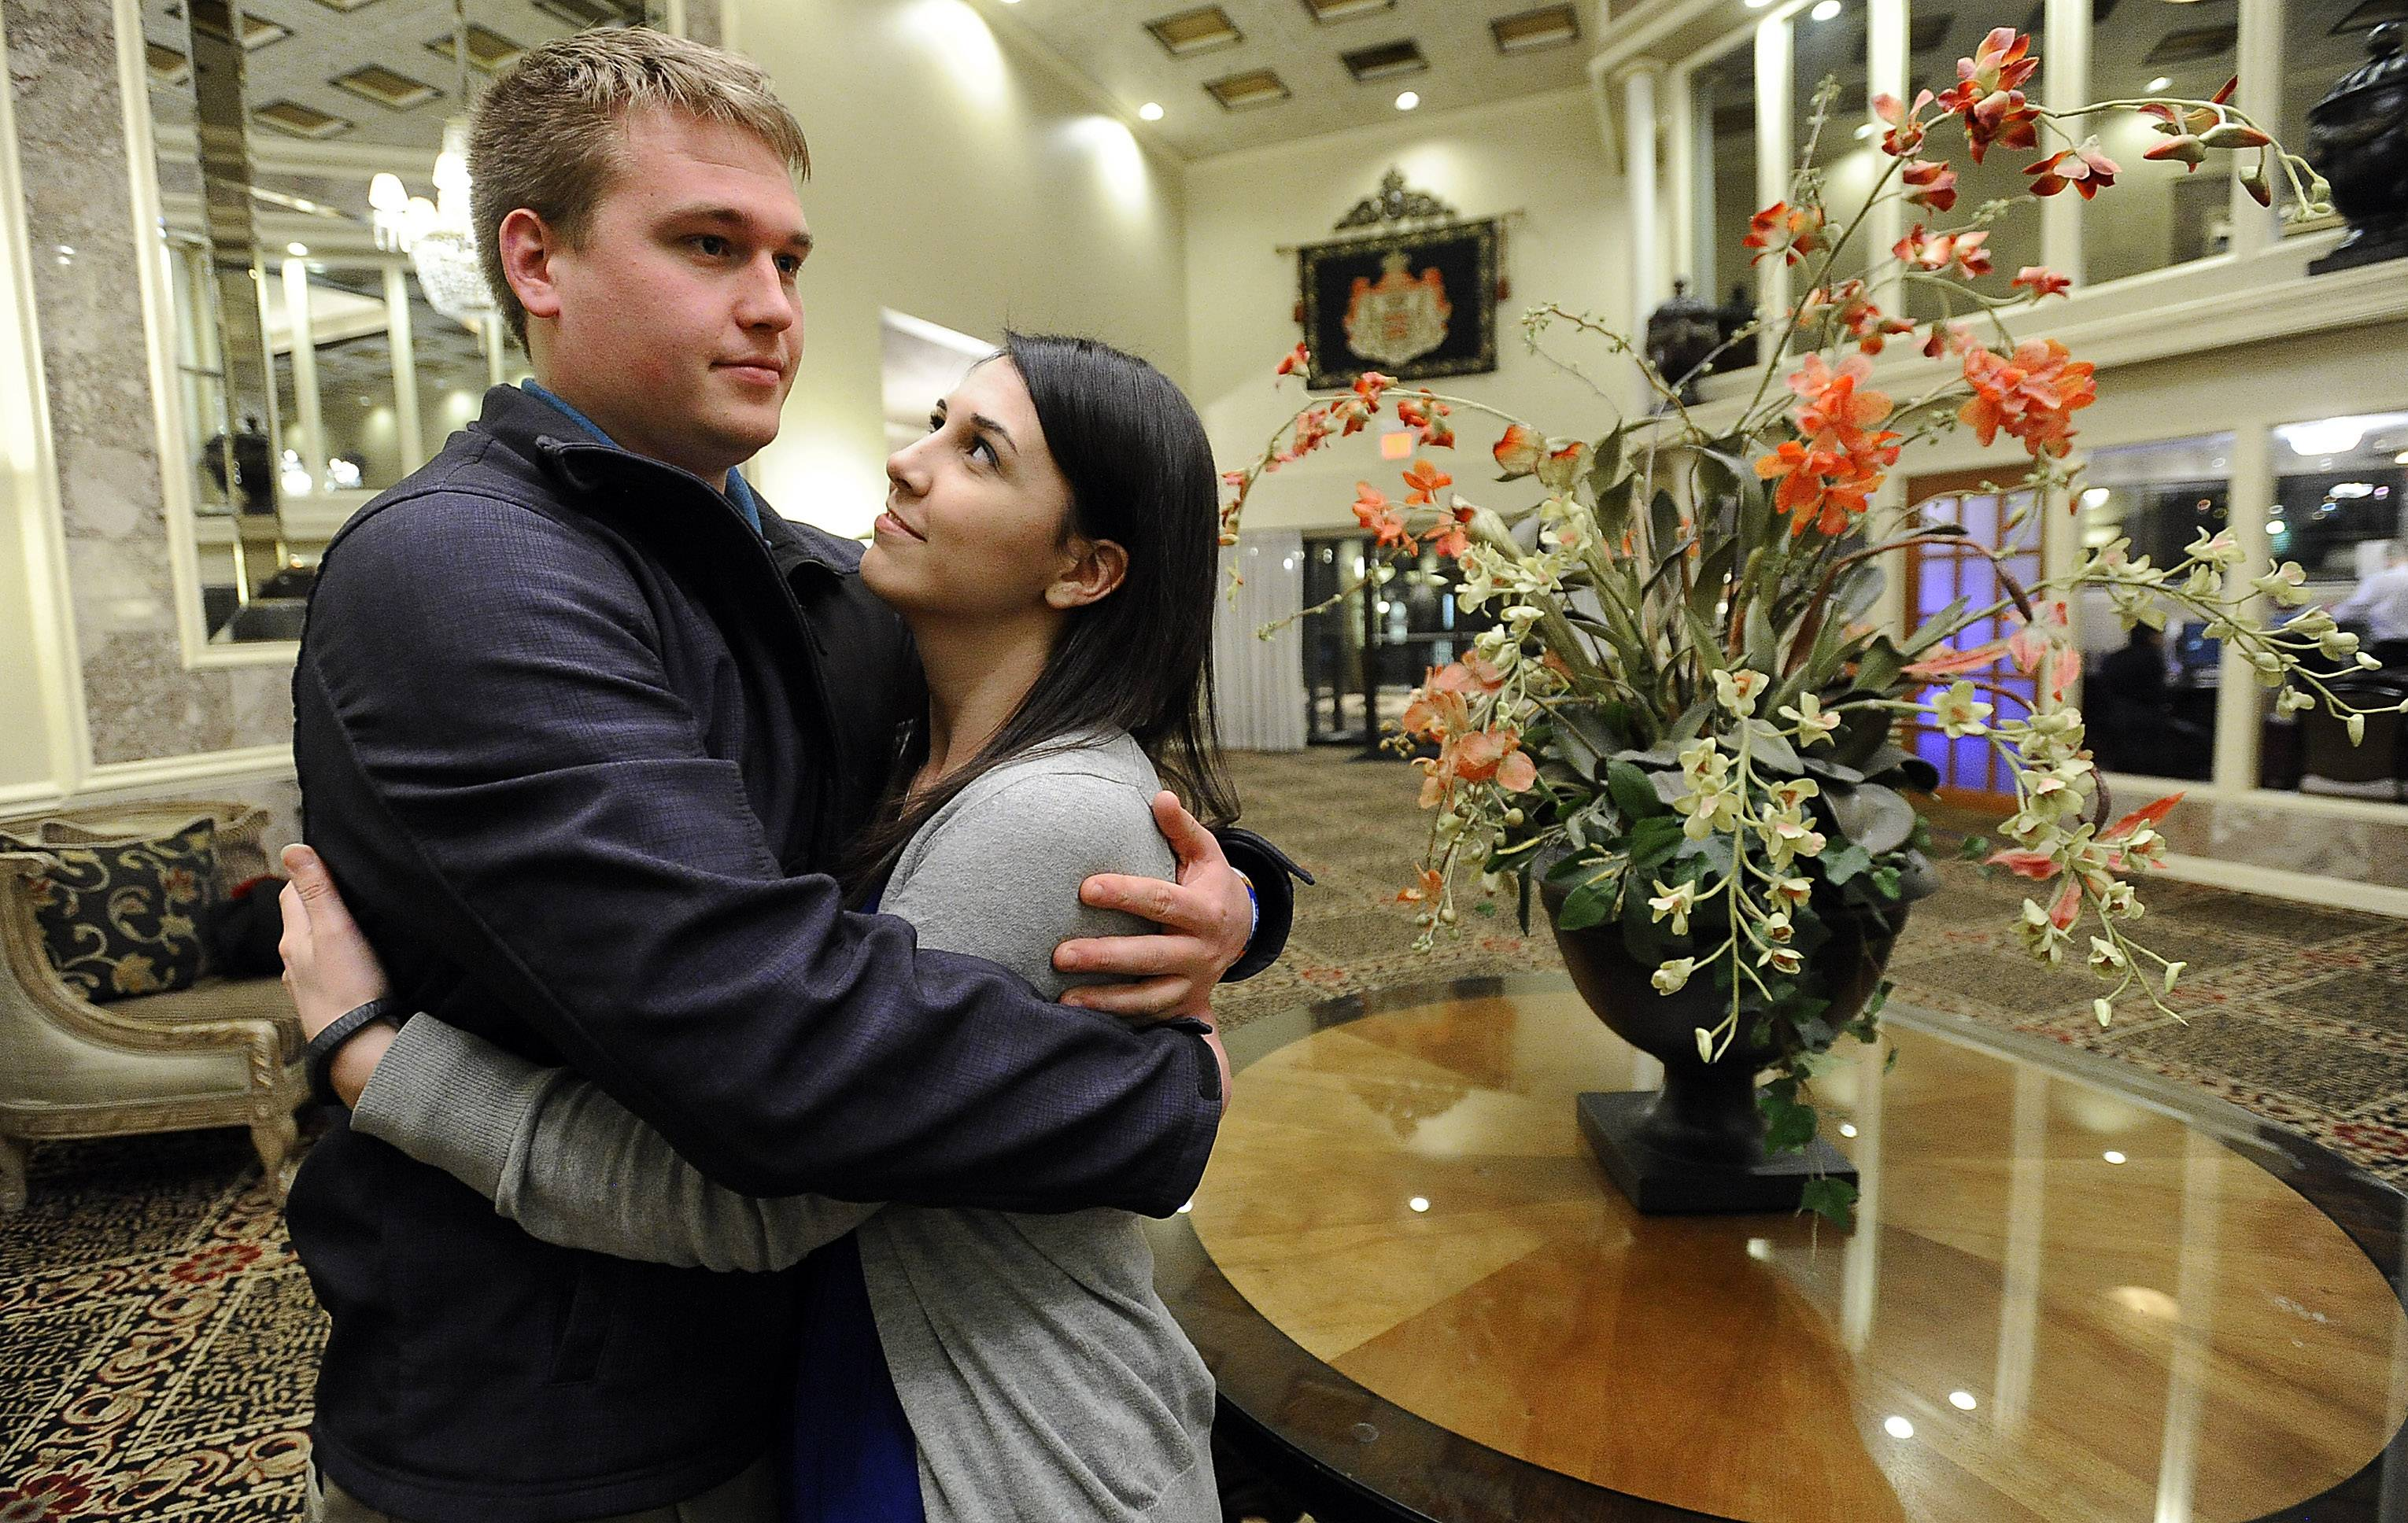 John Mueller and Kelly Bayer tour The Cotillion in Palatine, where they now plan on holding their summer wedding reception. The engaged couple scrambled to find a venue after their earlier location, Bristol Courts Banquets, abruptly closed.